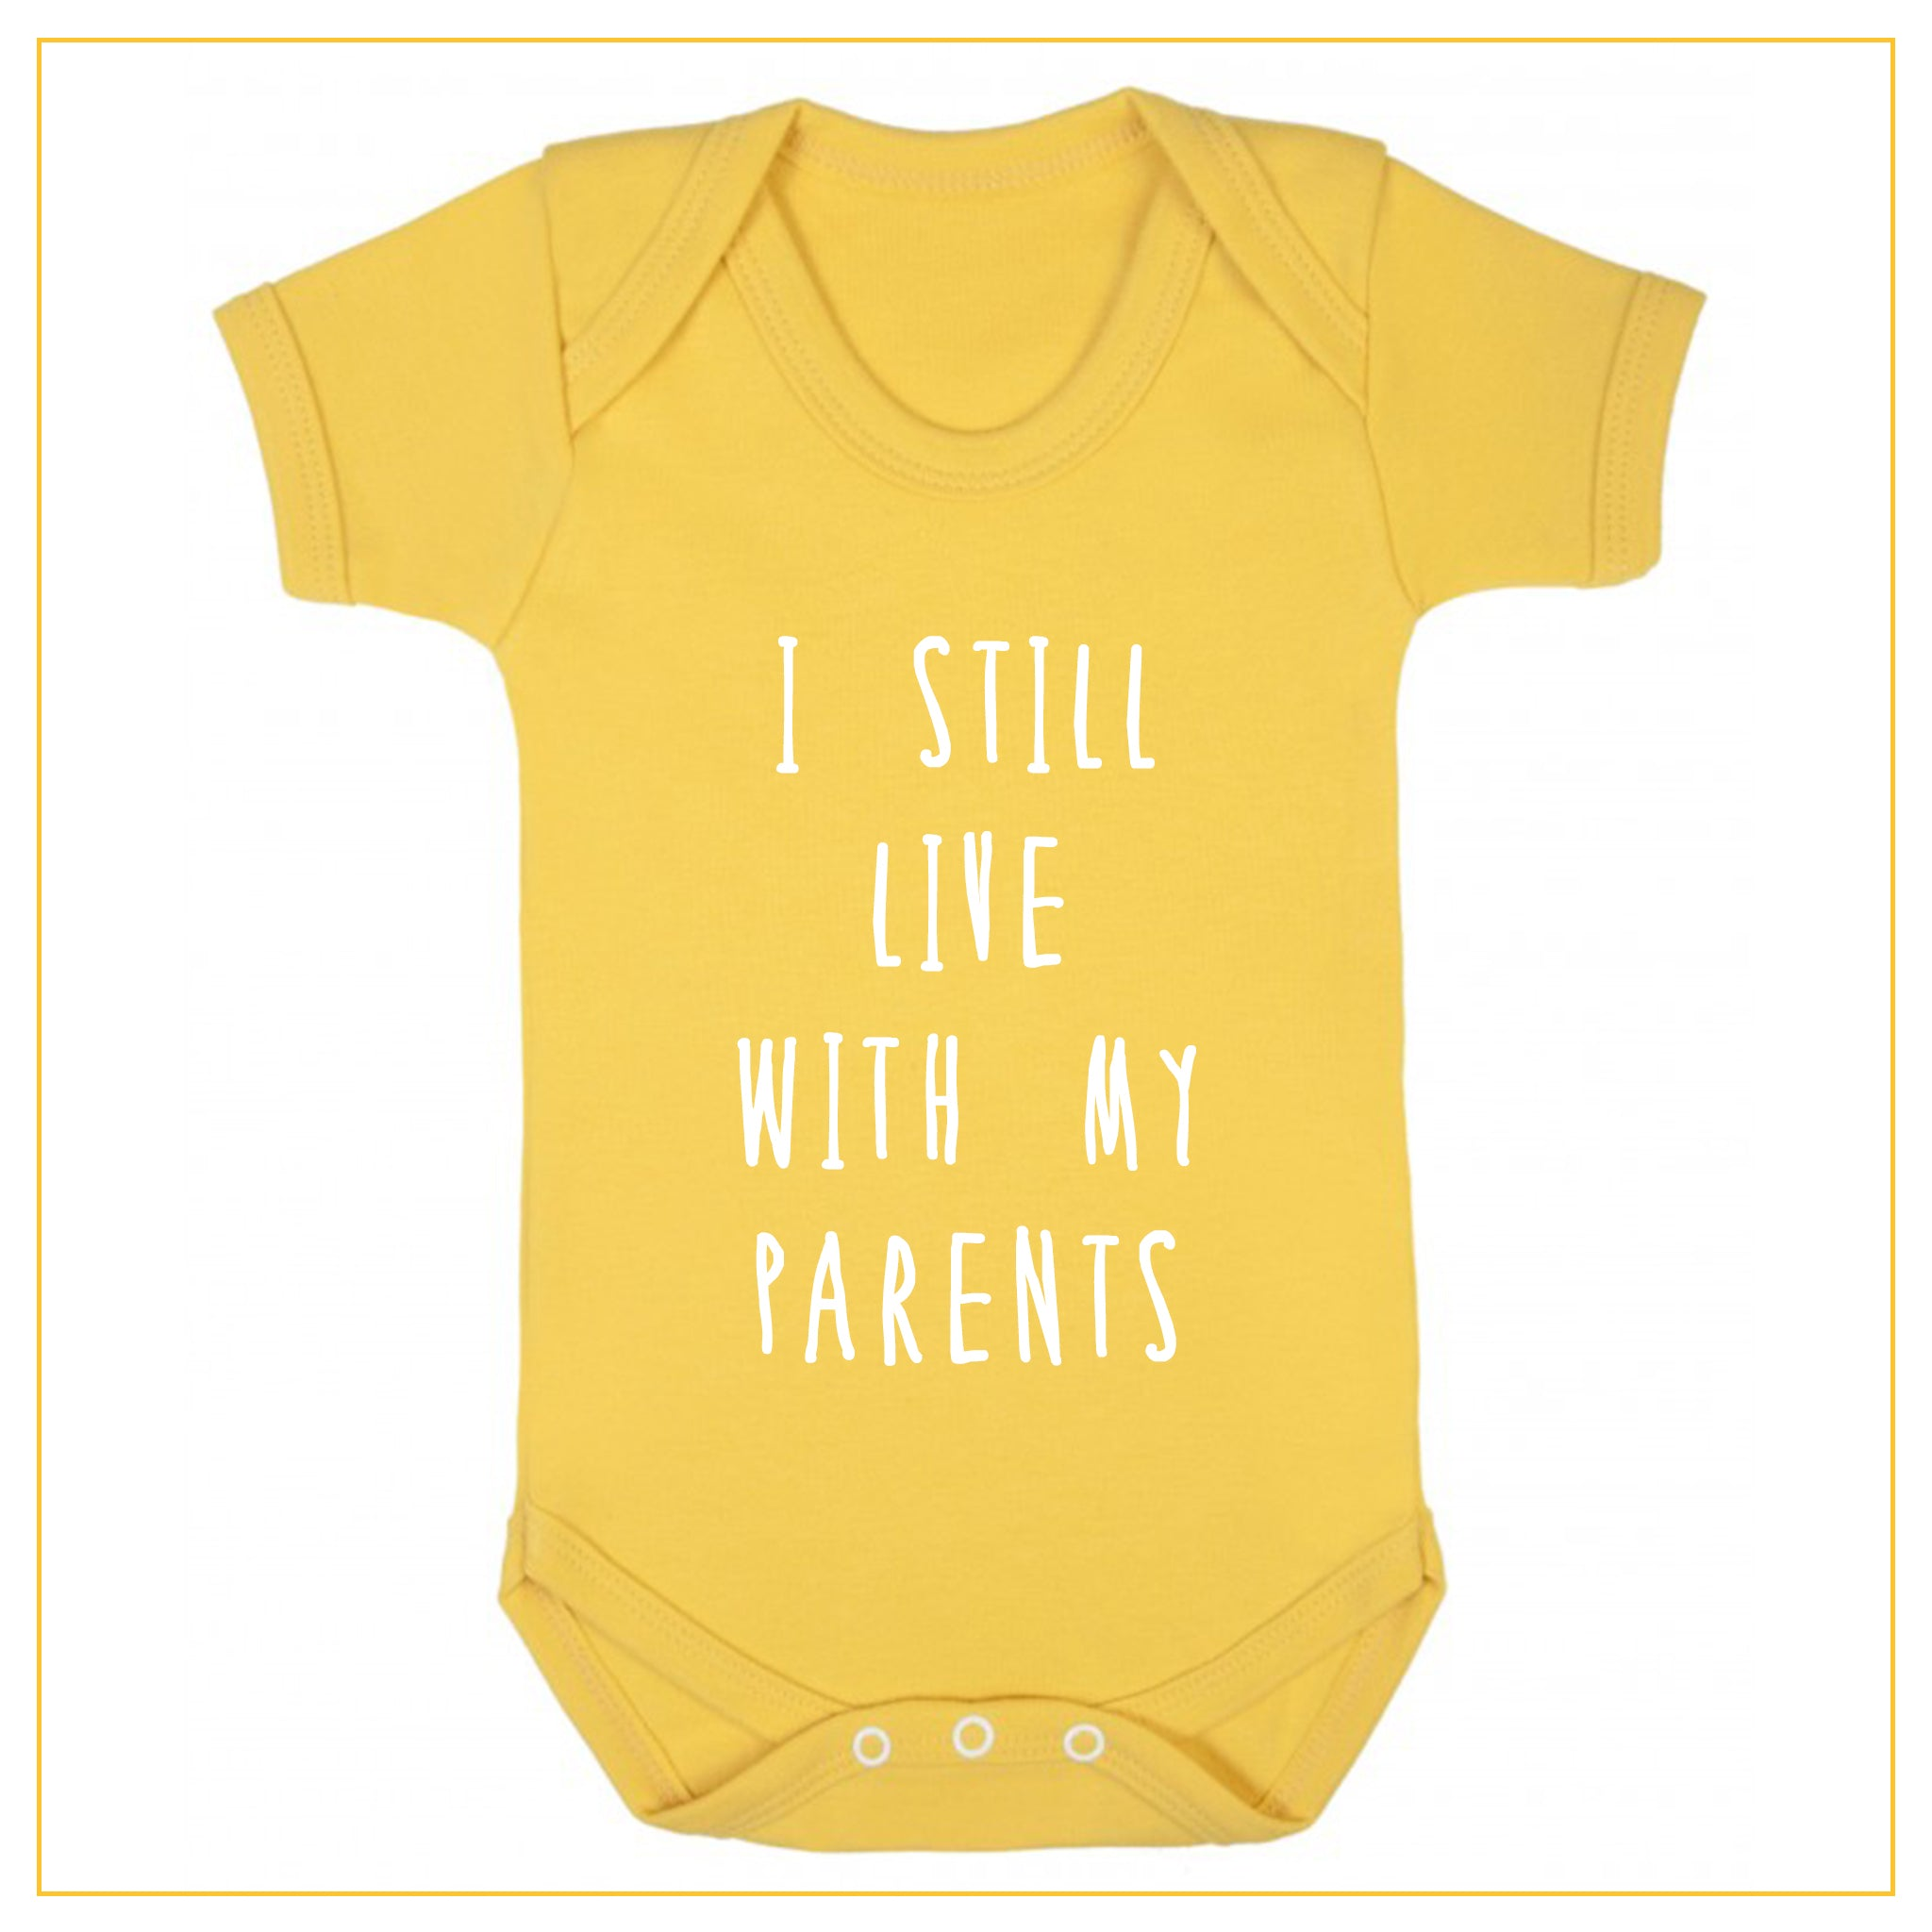 I still live with my parents baby onesie in yellow